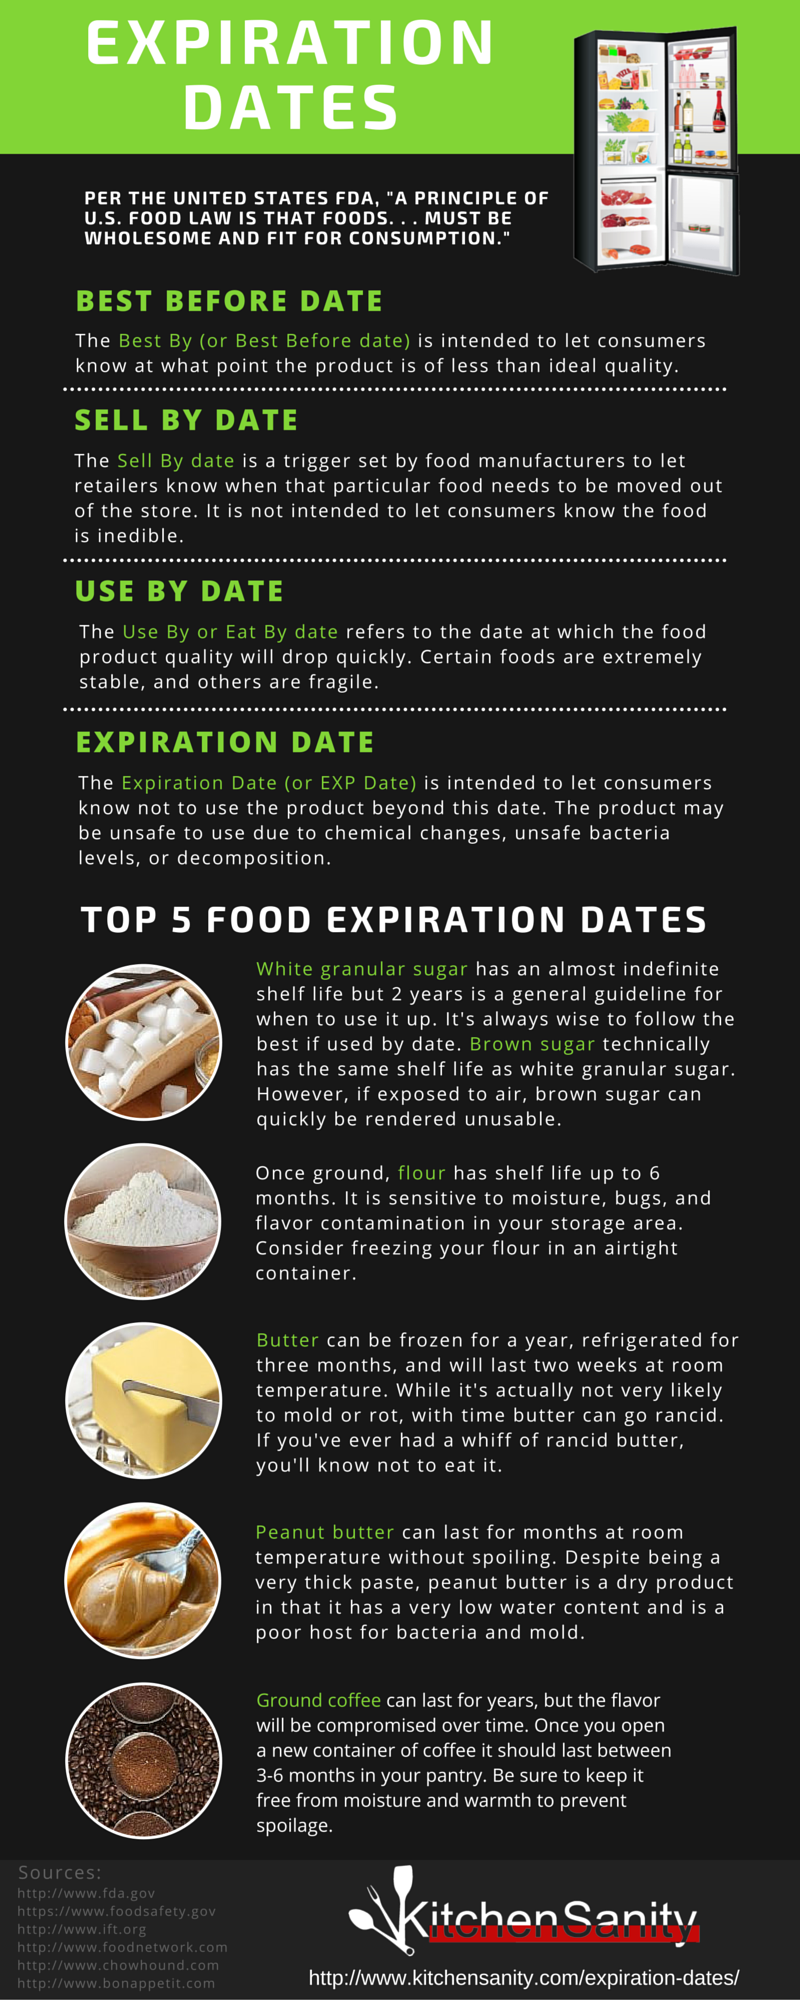 Food Expiration Dates Safety Expiration Dates On Food Food Food Safety